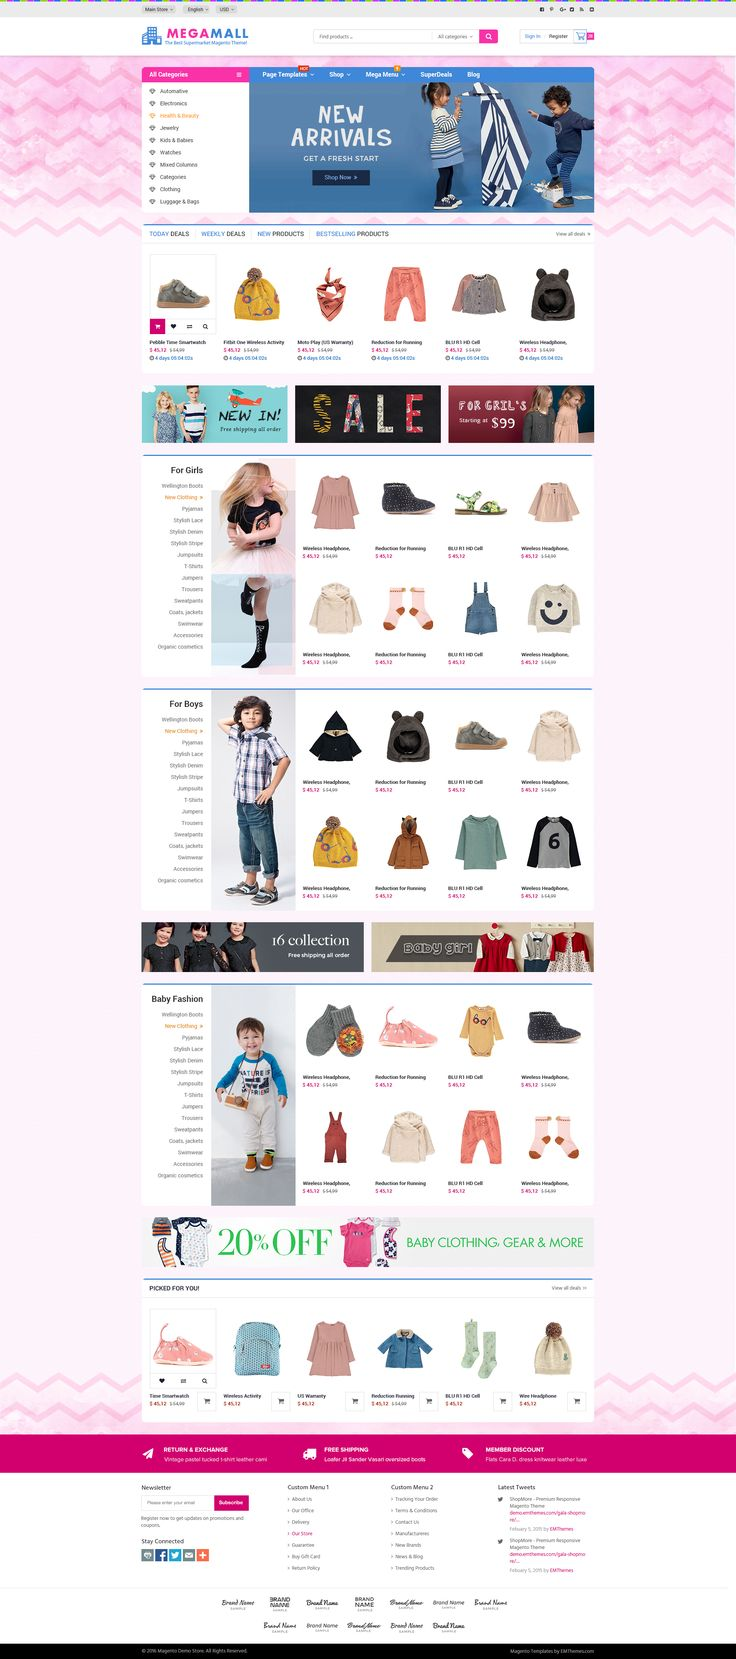 Fashion Mega Mall is a Magento Theme designed for fashion store, fashion shopping mall selling clothes, apparel, t-shirt for men, women and kids. This design is one of sample layout in the Magento theme package MegaMall which is designed and developed by …